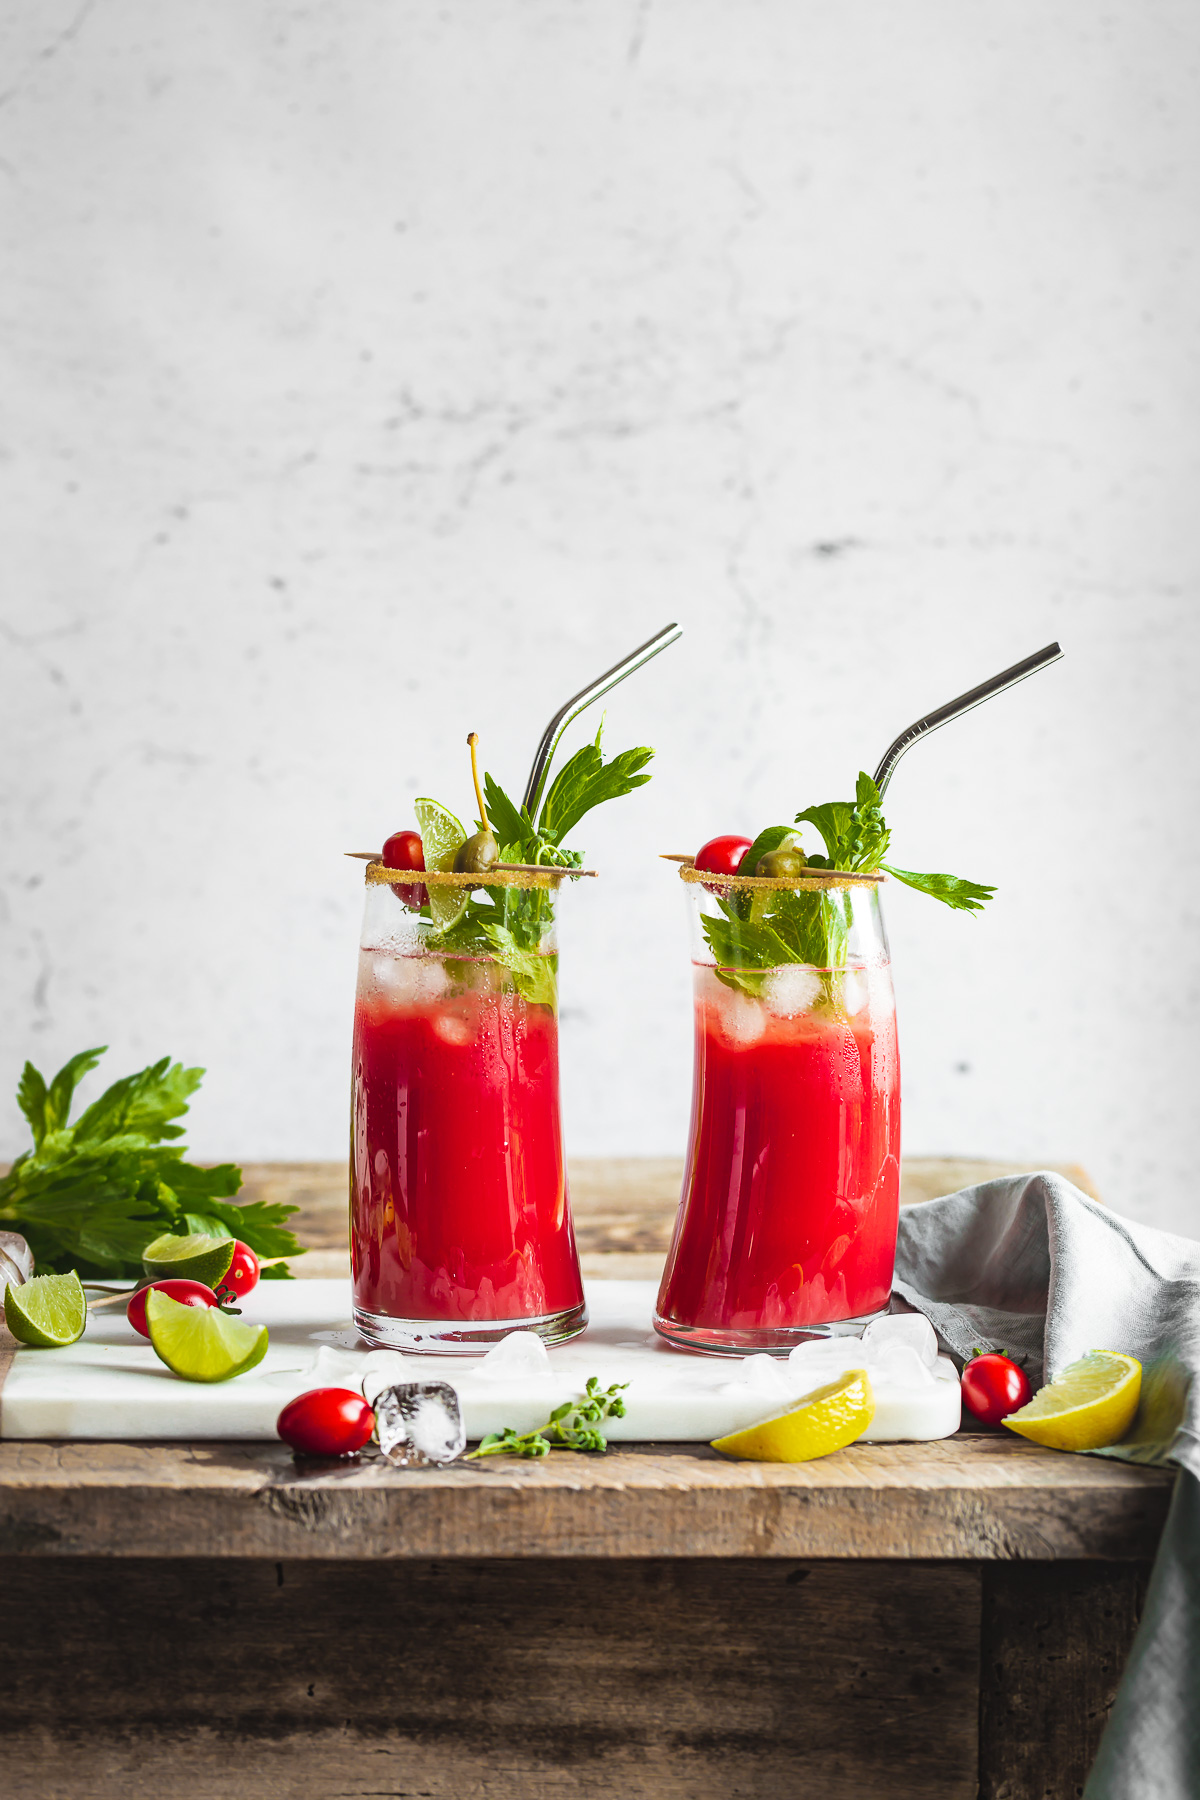 healthy Vegan Water Kefir Virgin Mary recipe #cocktail ricetta Bloody Mary Analcolico al Kefir d acqua per brunch e festa sano rinfrescante succo di pomodoro #healthy cocktail